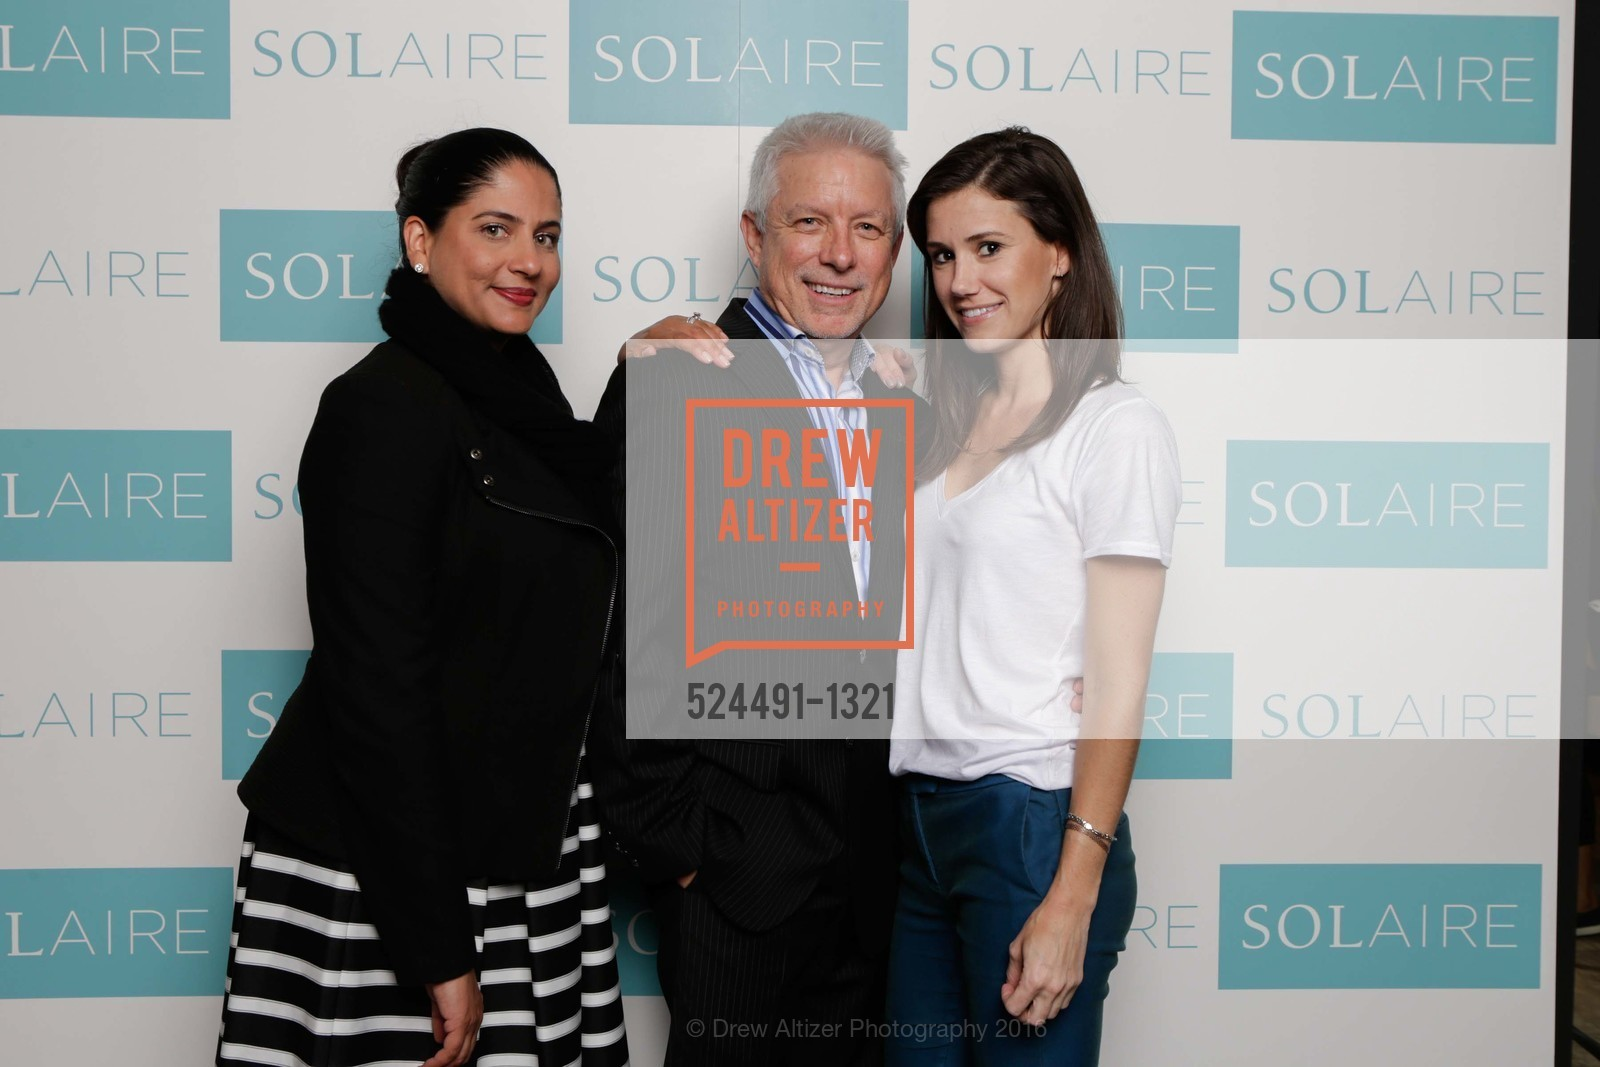 Nina Dosanjh, Bill Feyling, Amy Scarlett, Photo #524491-1321